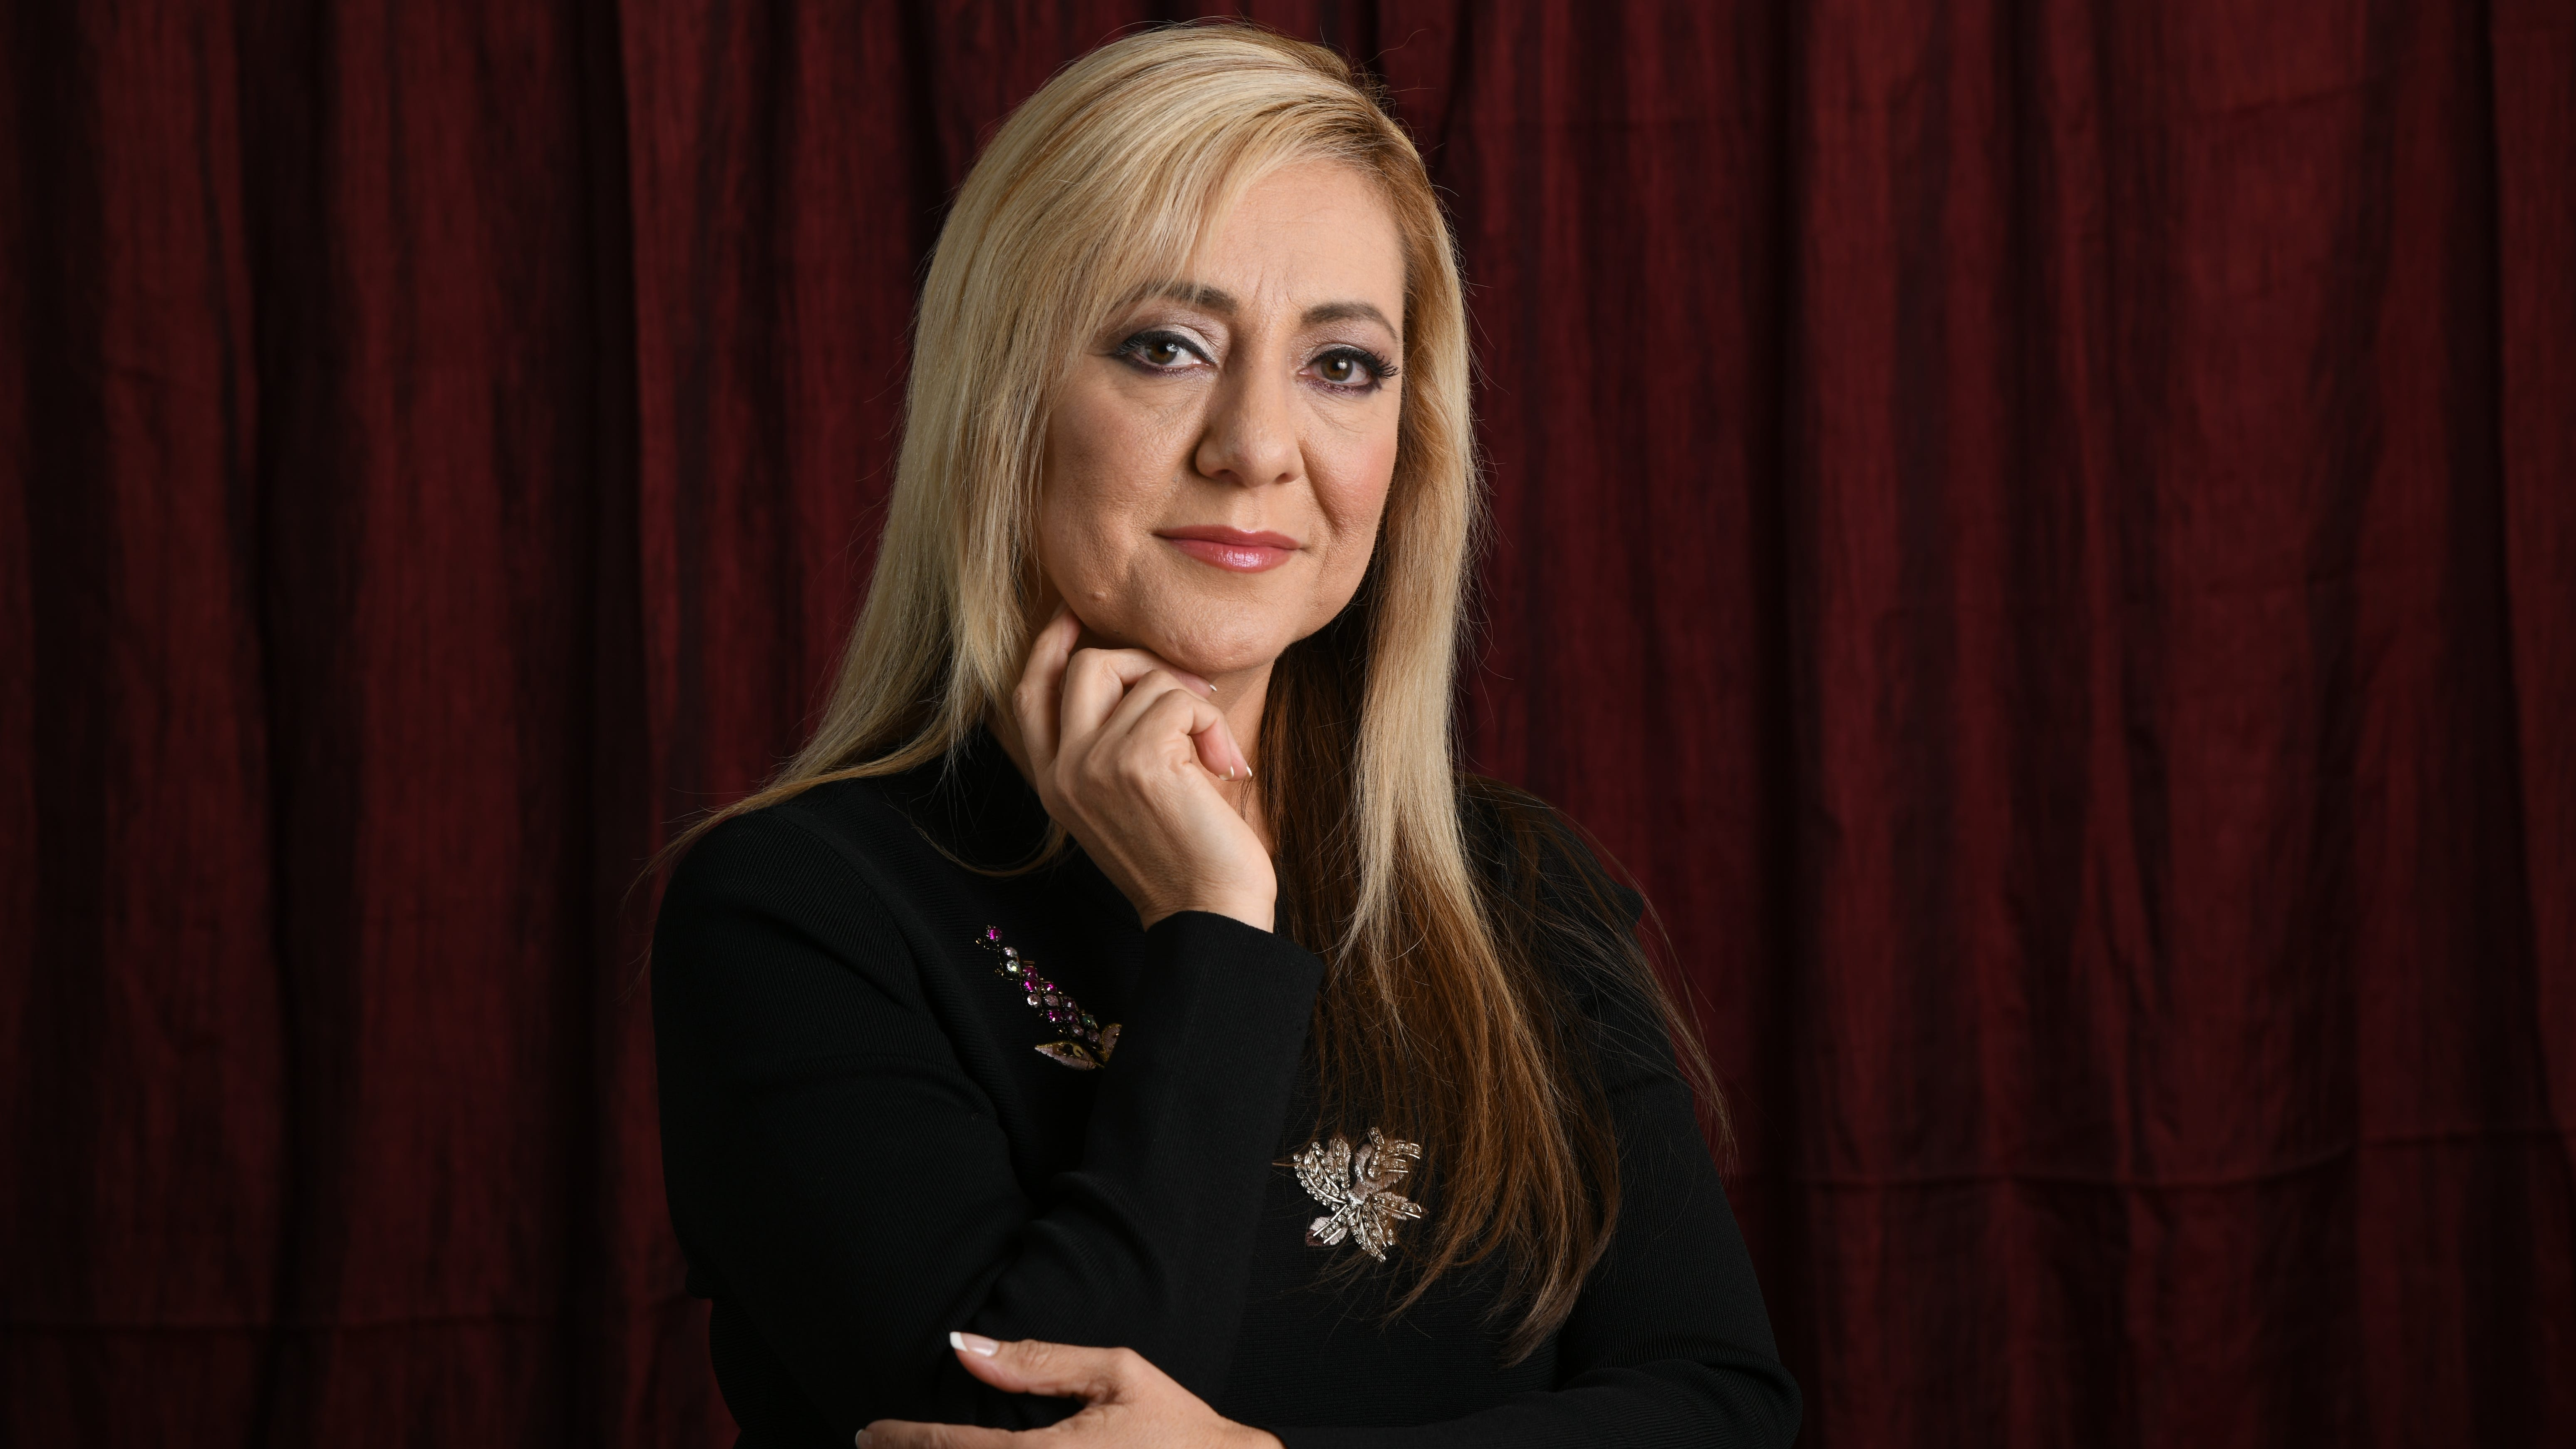 Lorena Bobbitt OK'd filmmakers' request to interview her ex, John: 'I know who he is'